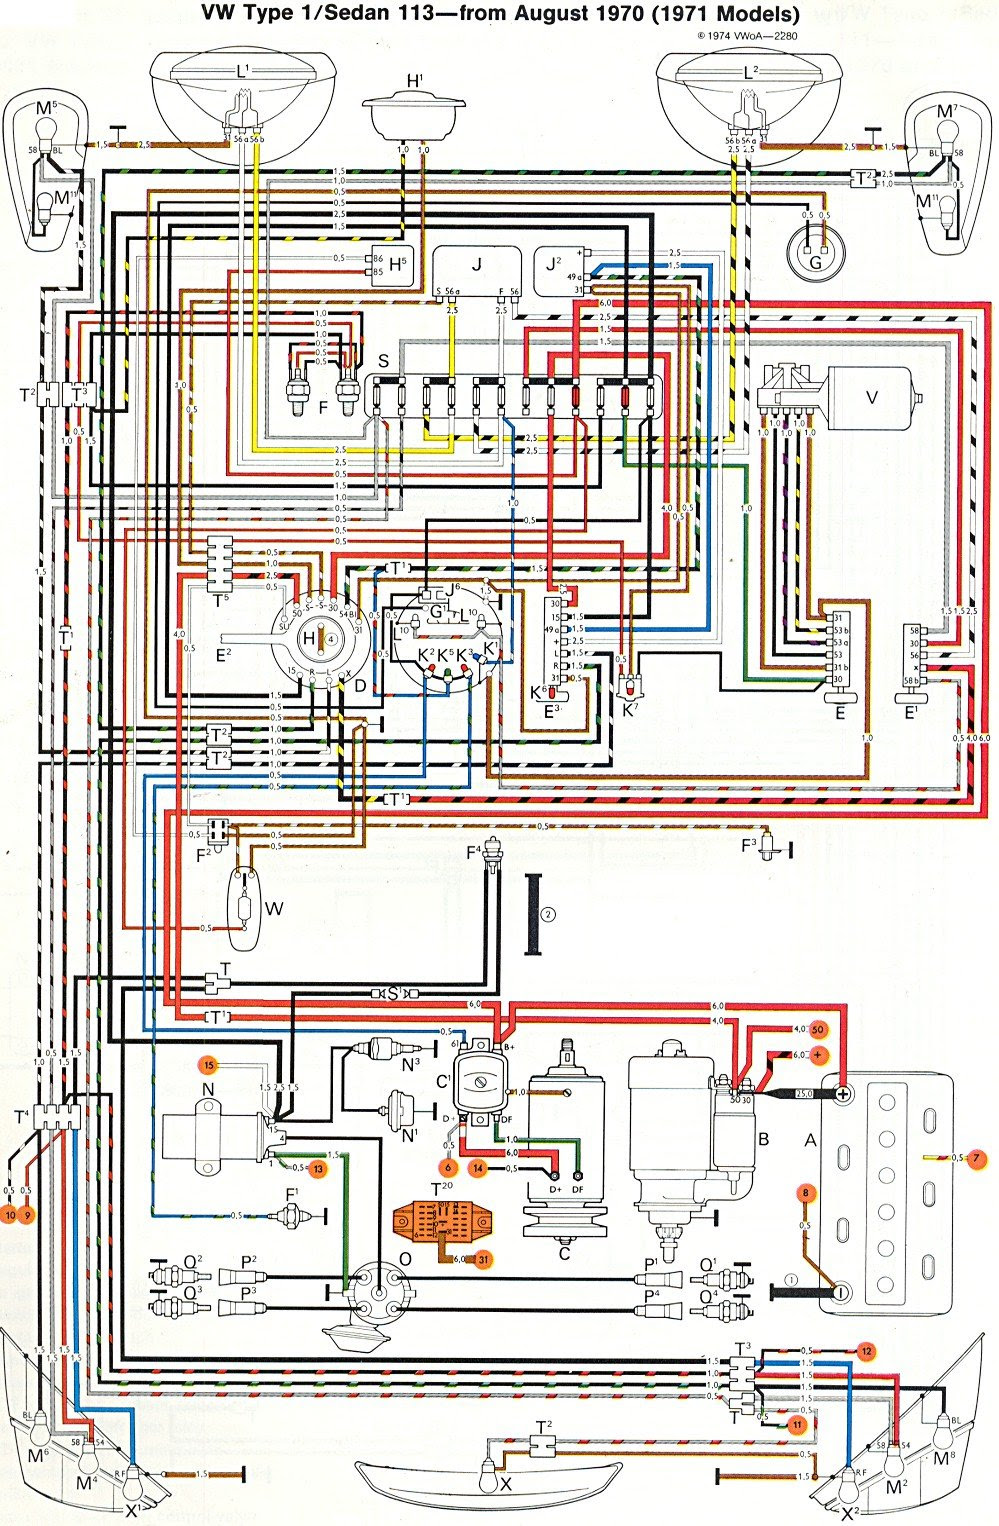 1969 Vw Beetle Fuse Box Wiring Diagrams Register Register Miglioribanche It